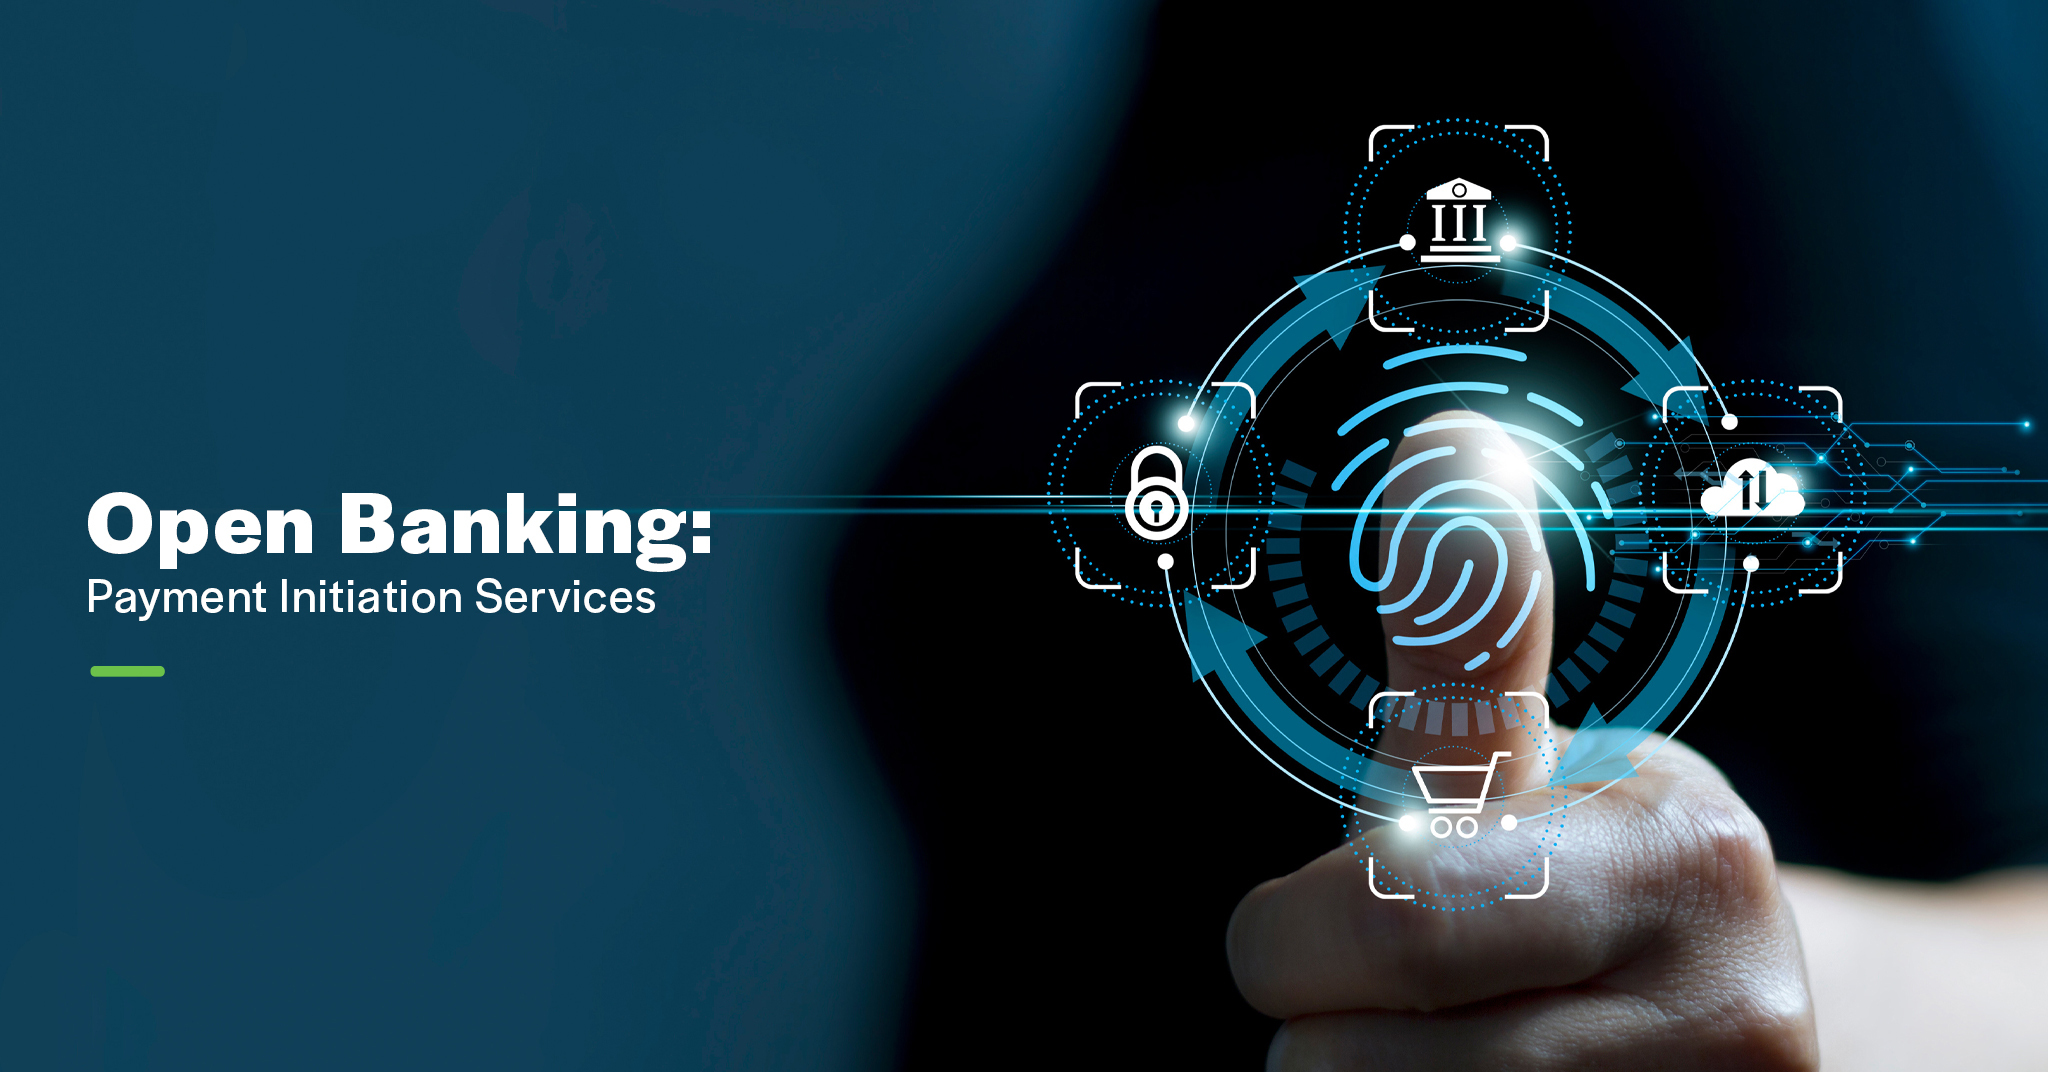 Open Banking: Payment Initiation Services